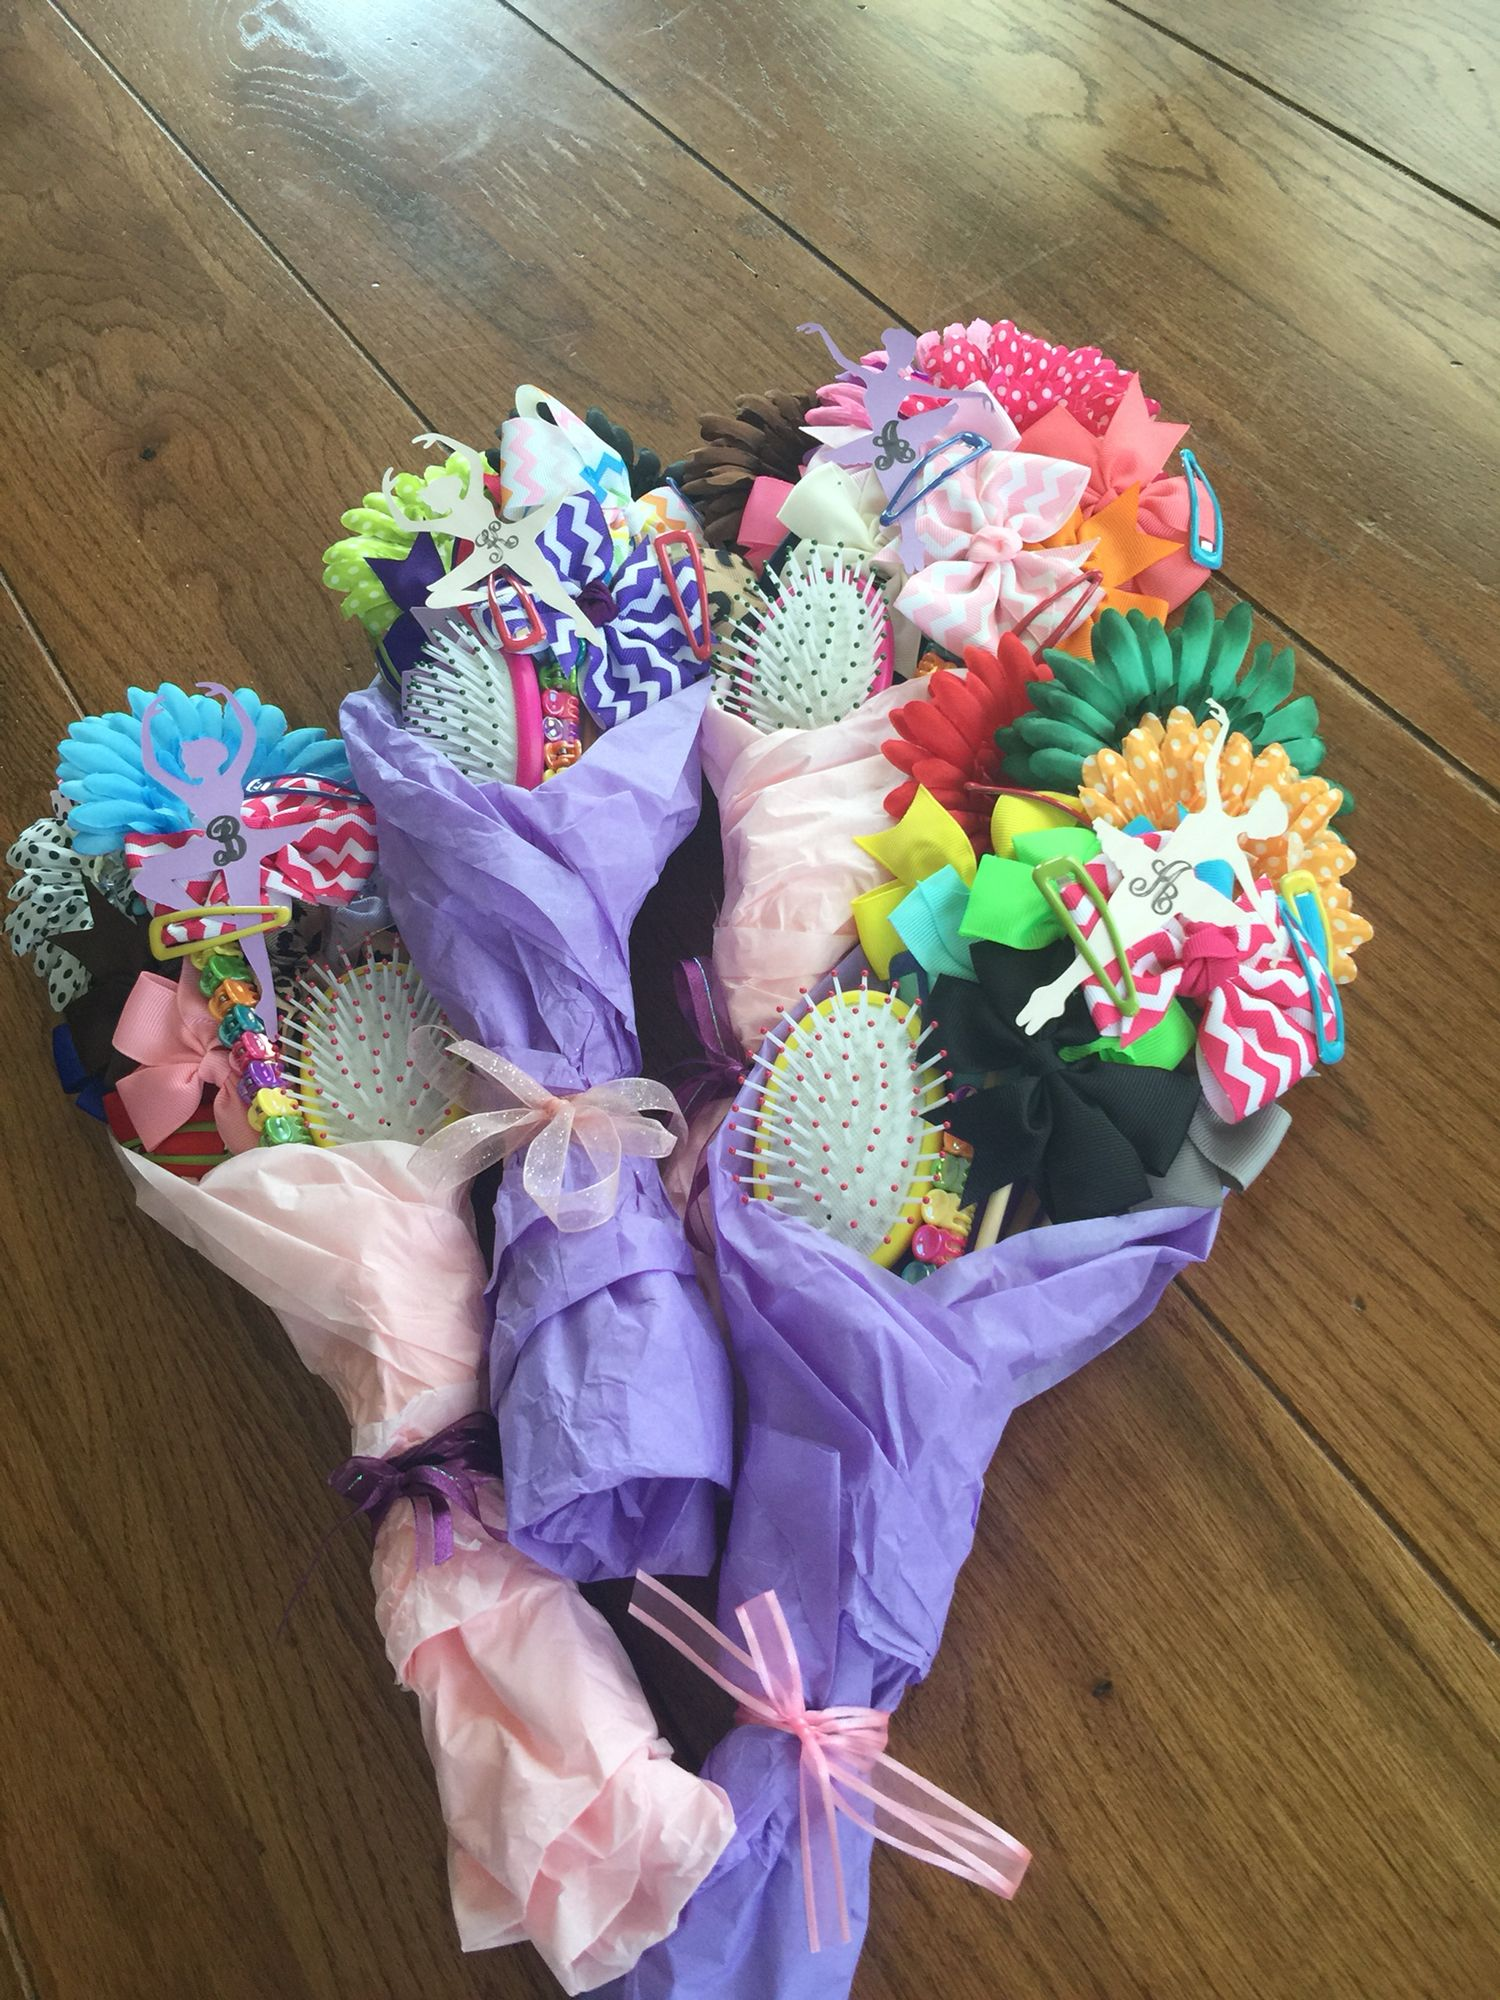 Hair Bows Bouquet For Dance Recital Recital Gift For Girls Diy Birthday Gifts Dance Recital Gifts Diy Gifts Sister